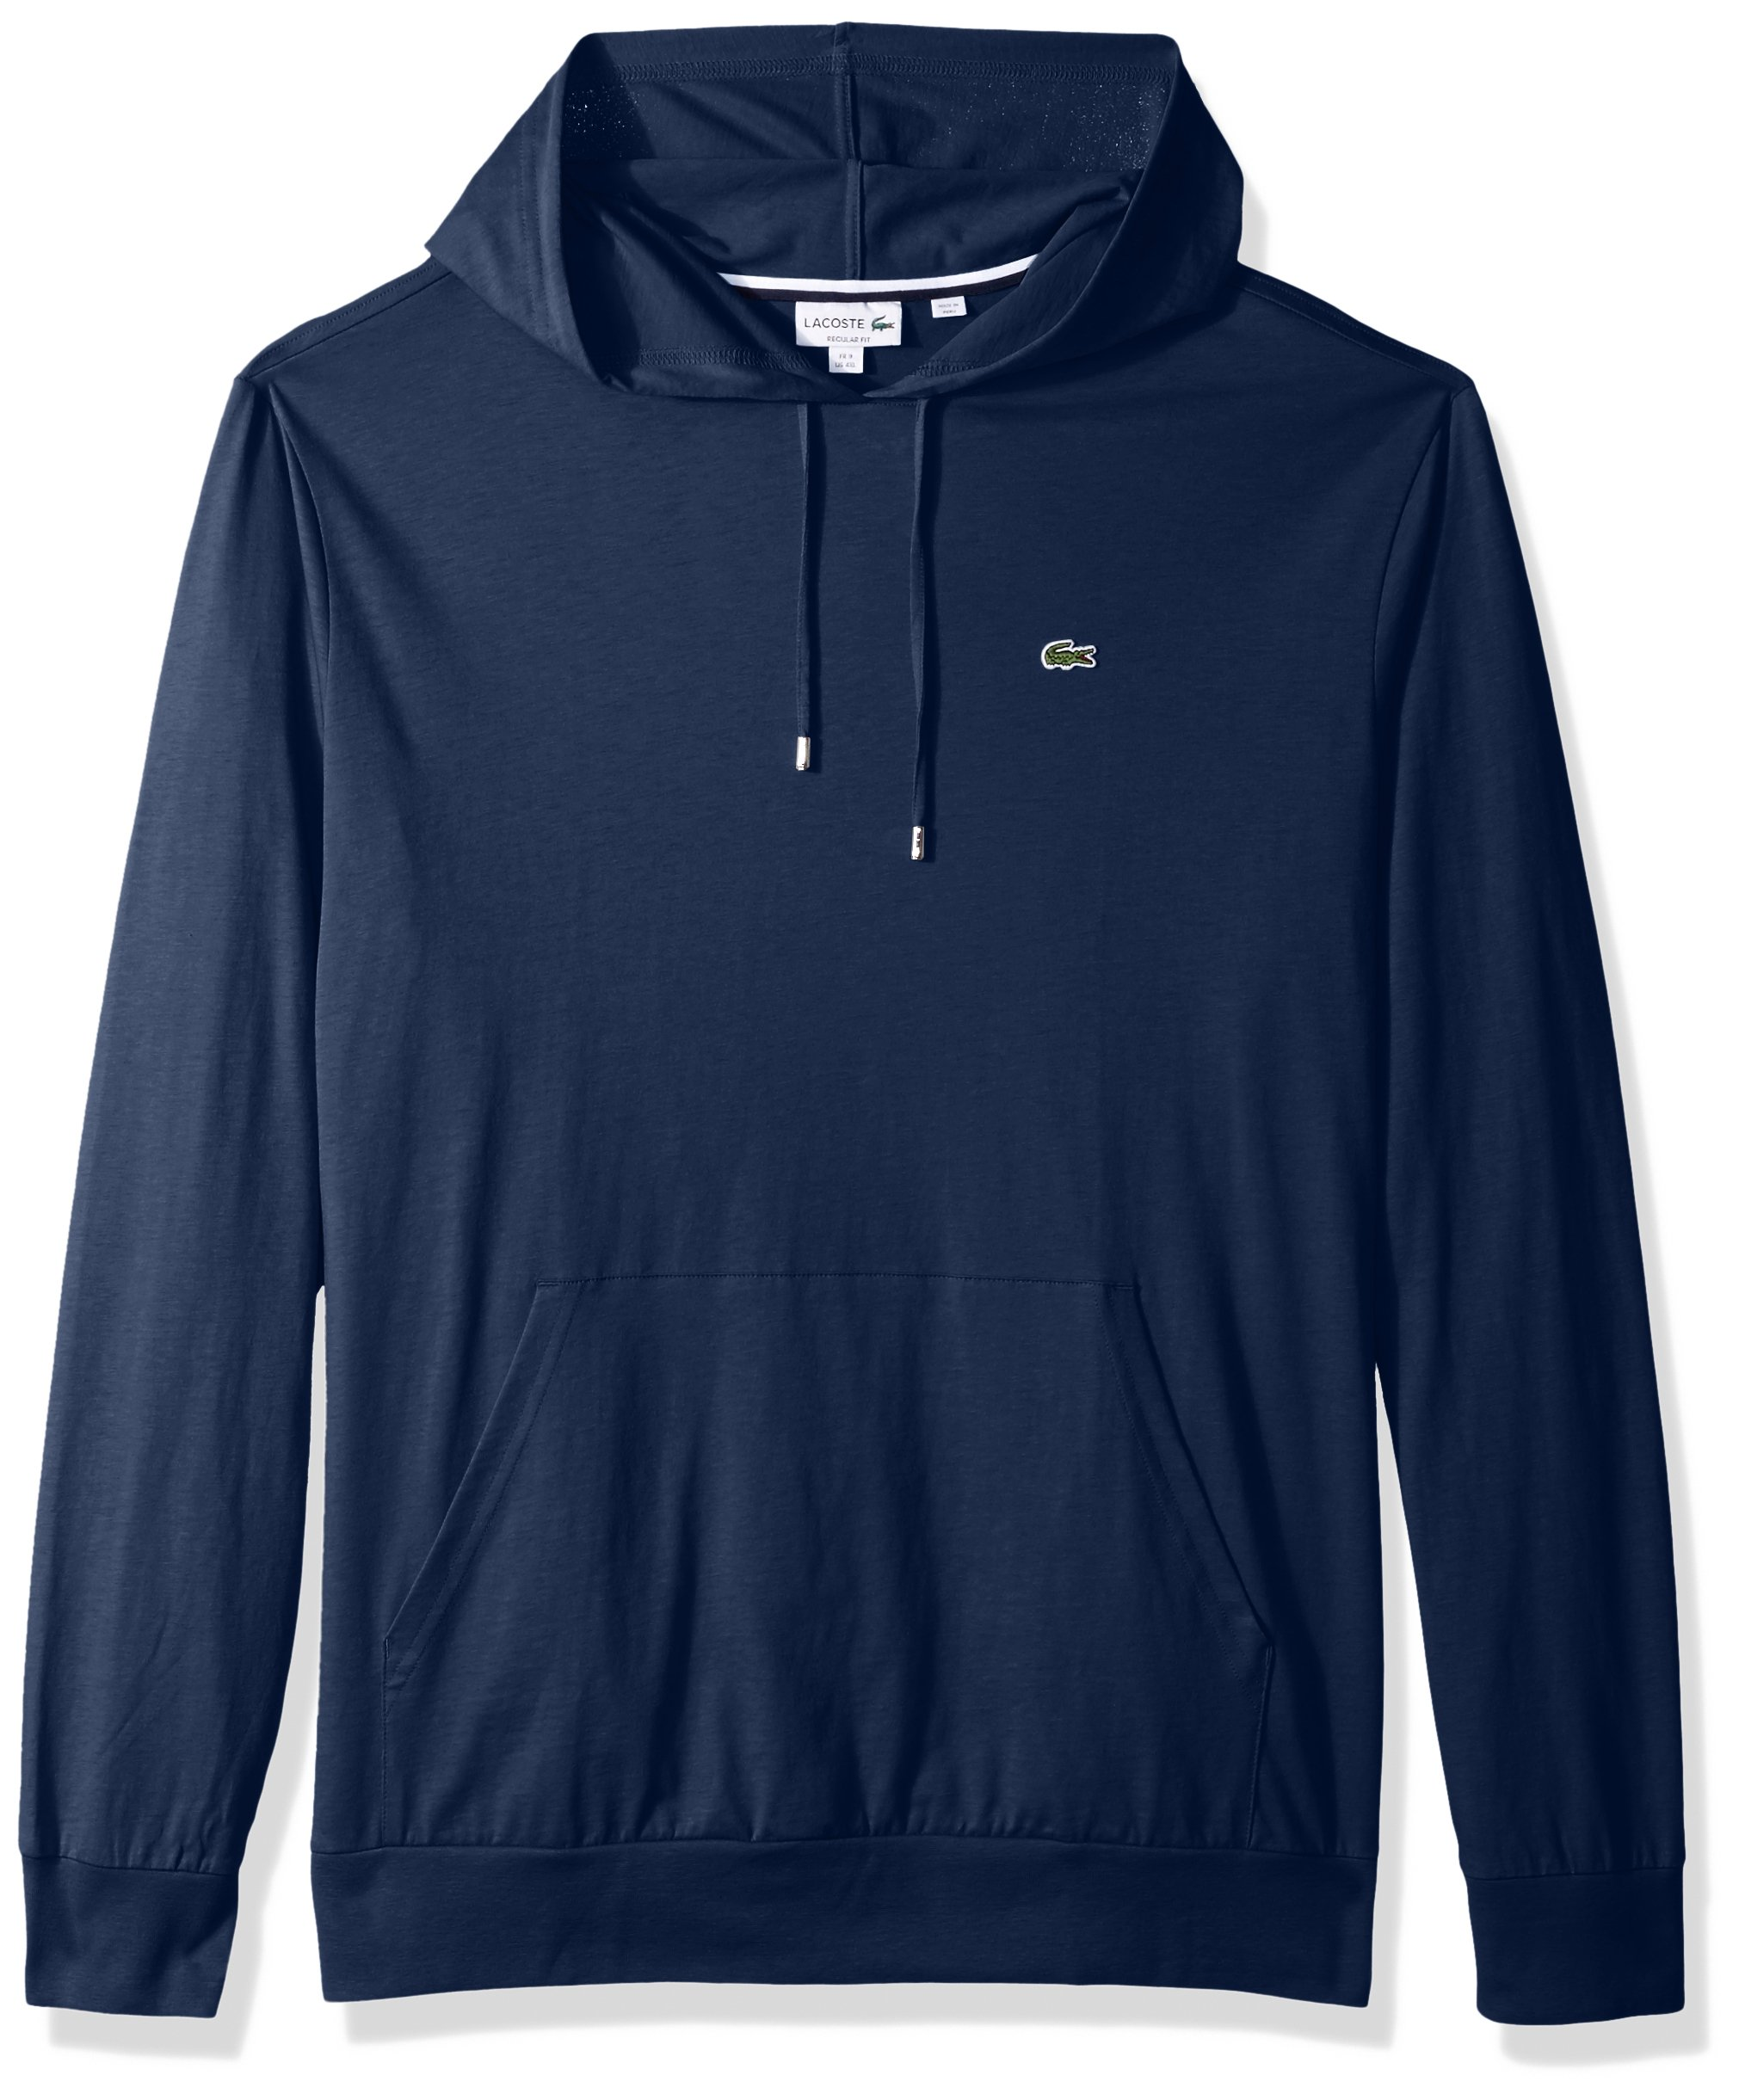 Lacoste Men's Long Sleeve Jersey Hoodie Tee With Central Pocket, TH9349, Anchor Chine, XL